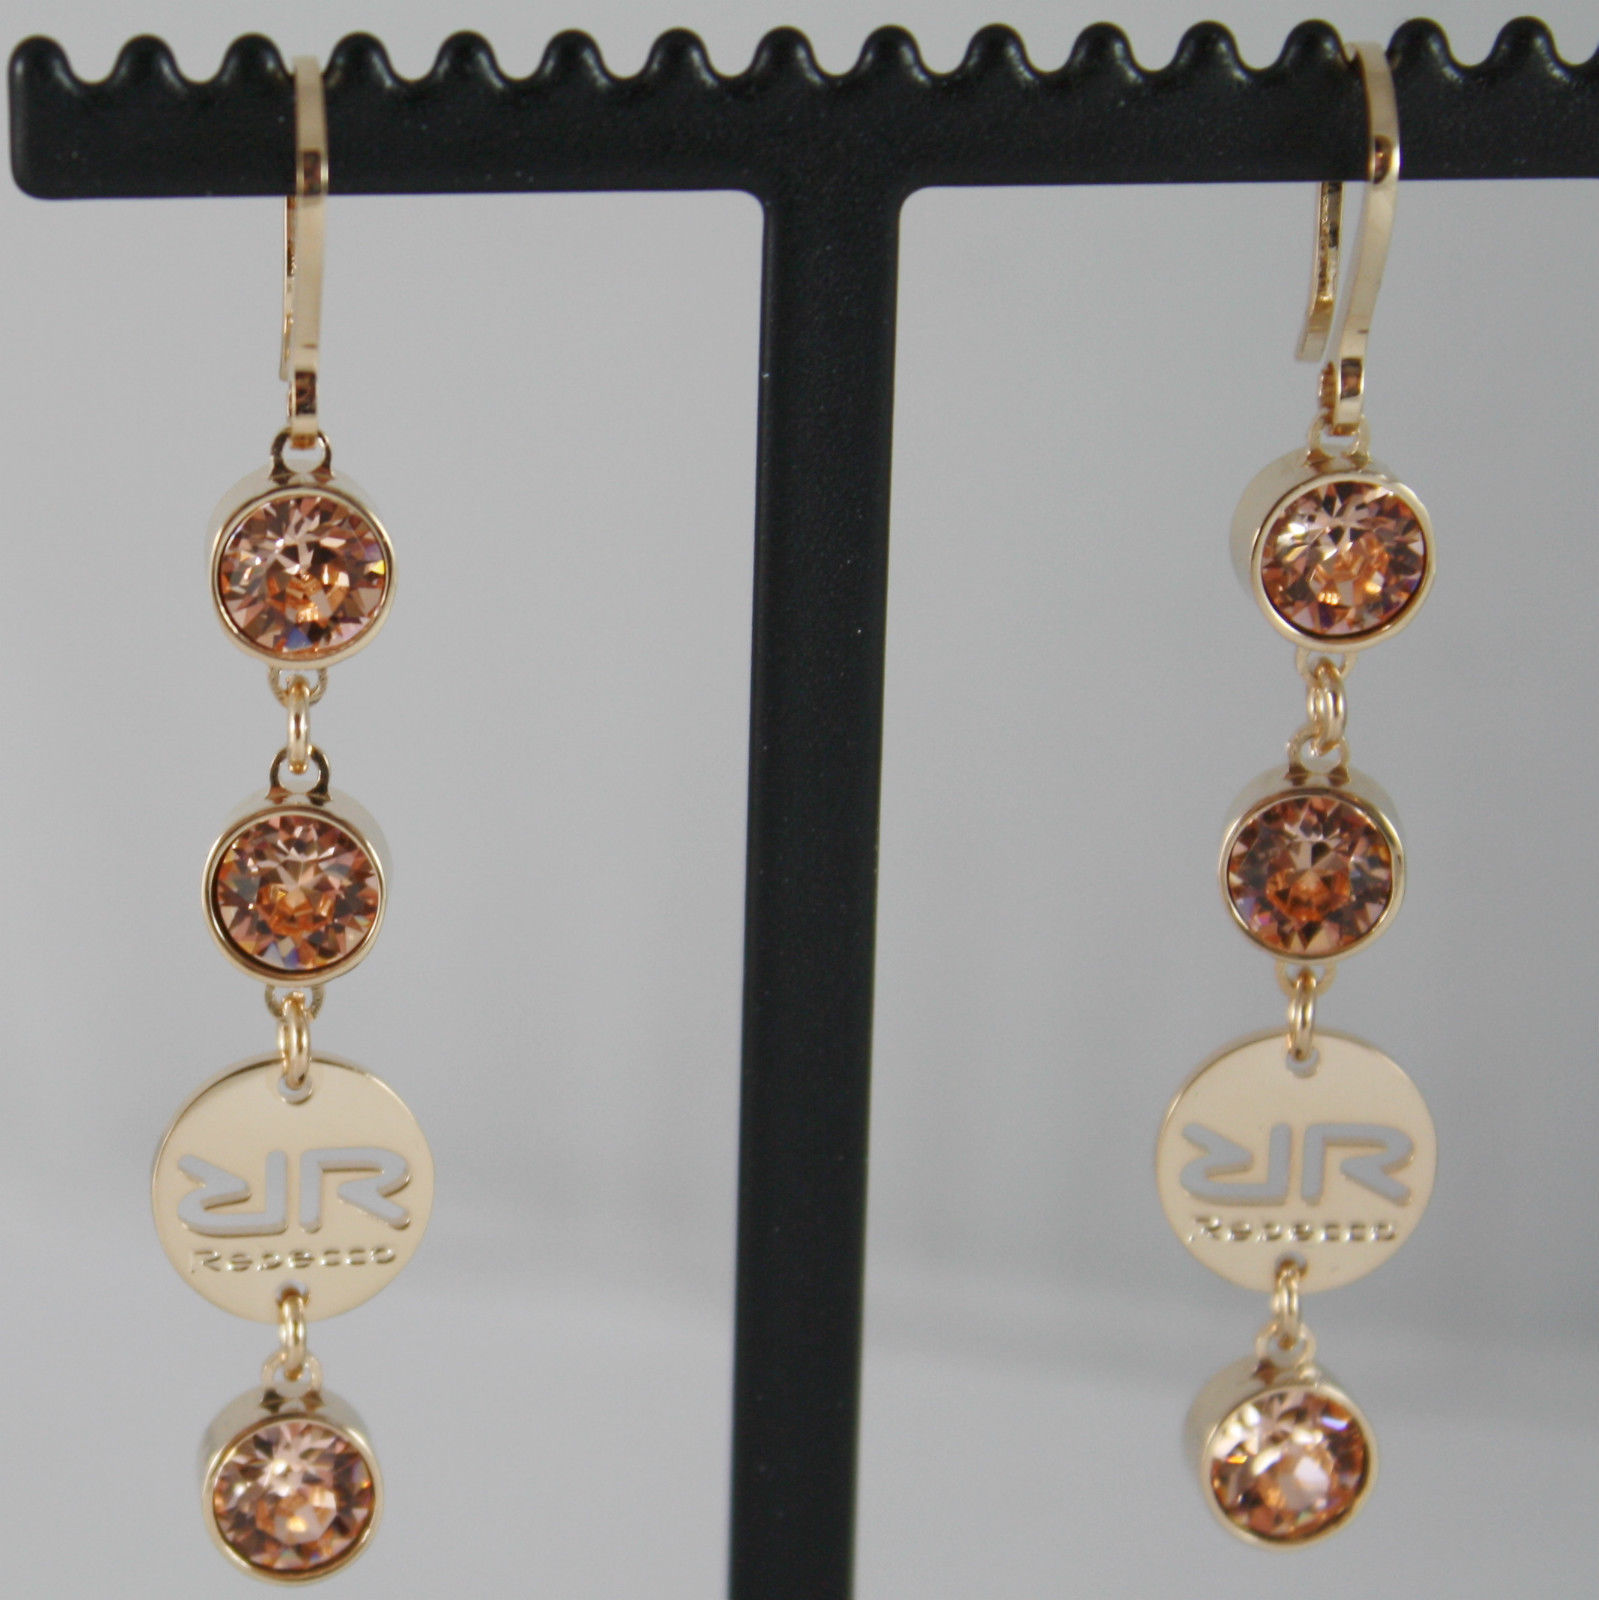 YELLOW BRONZE REBECCA PENDANT EARRINGS WITH ORANGE CRYSTAL CT 6.00 MADE IN ITALY